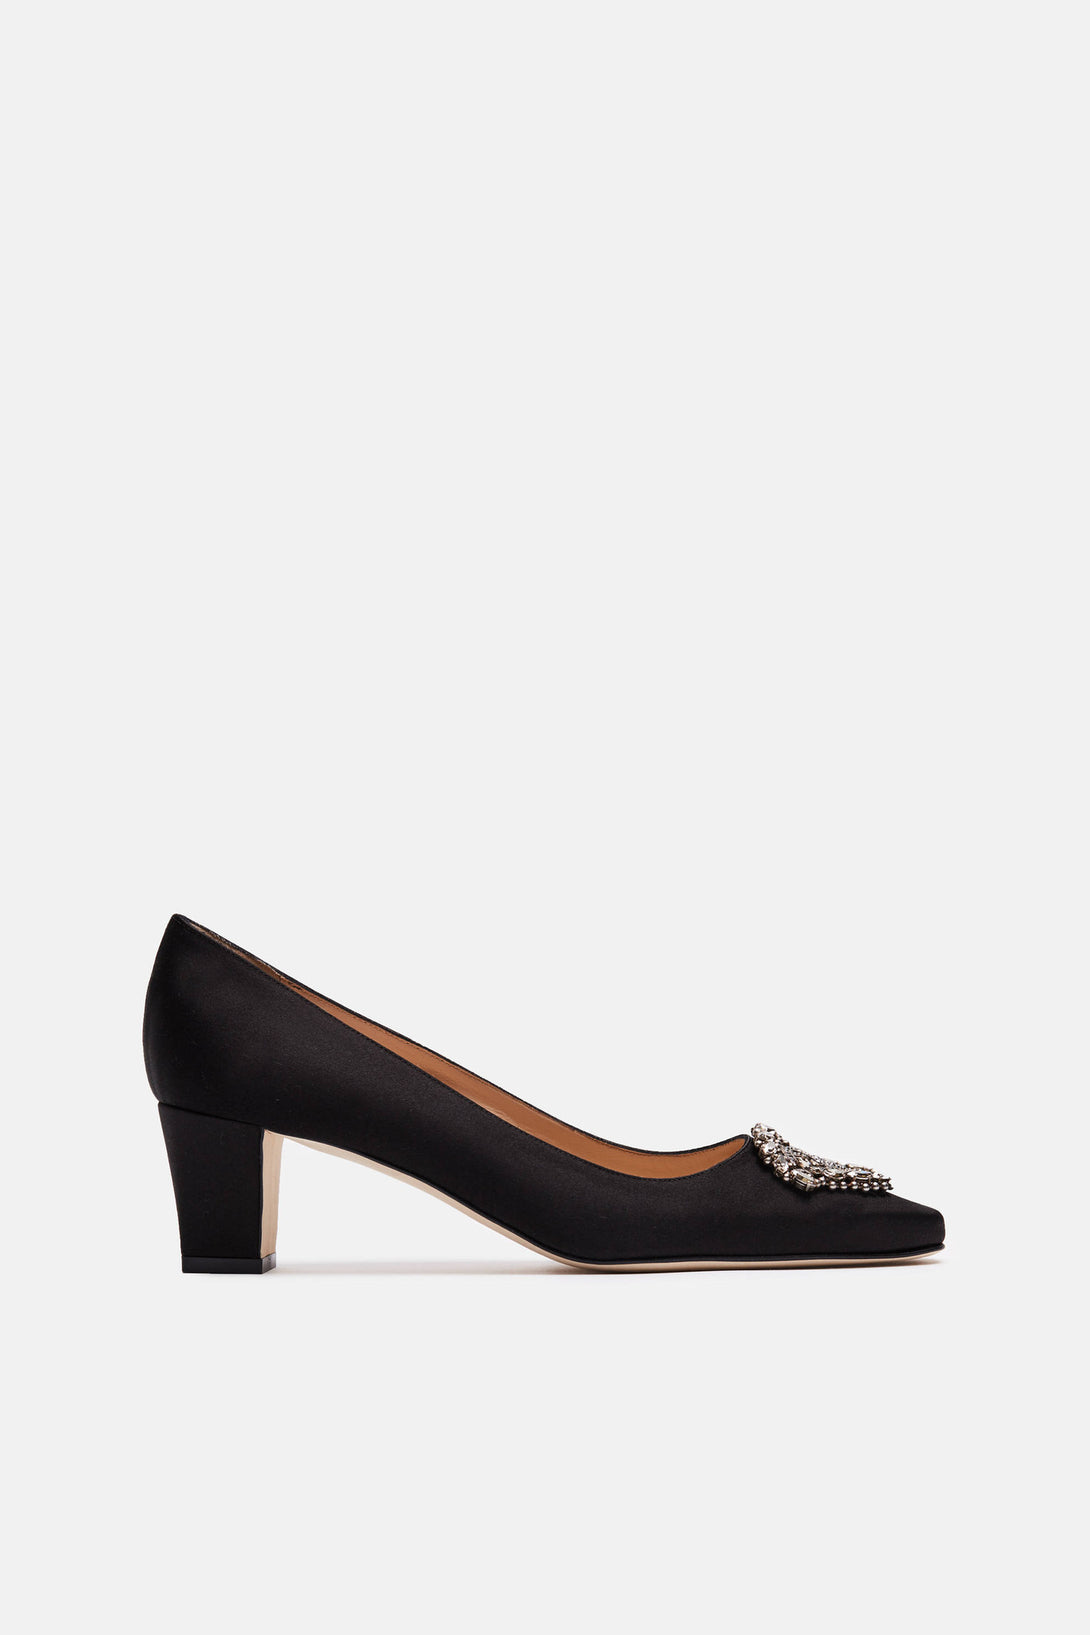 Okkato Jeweled Pump - Black Satin